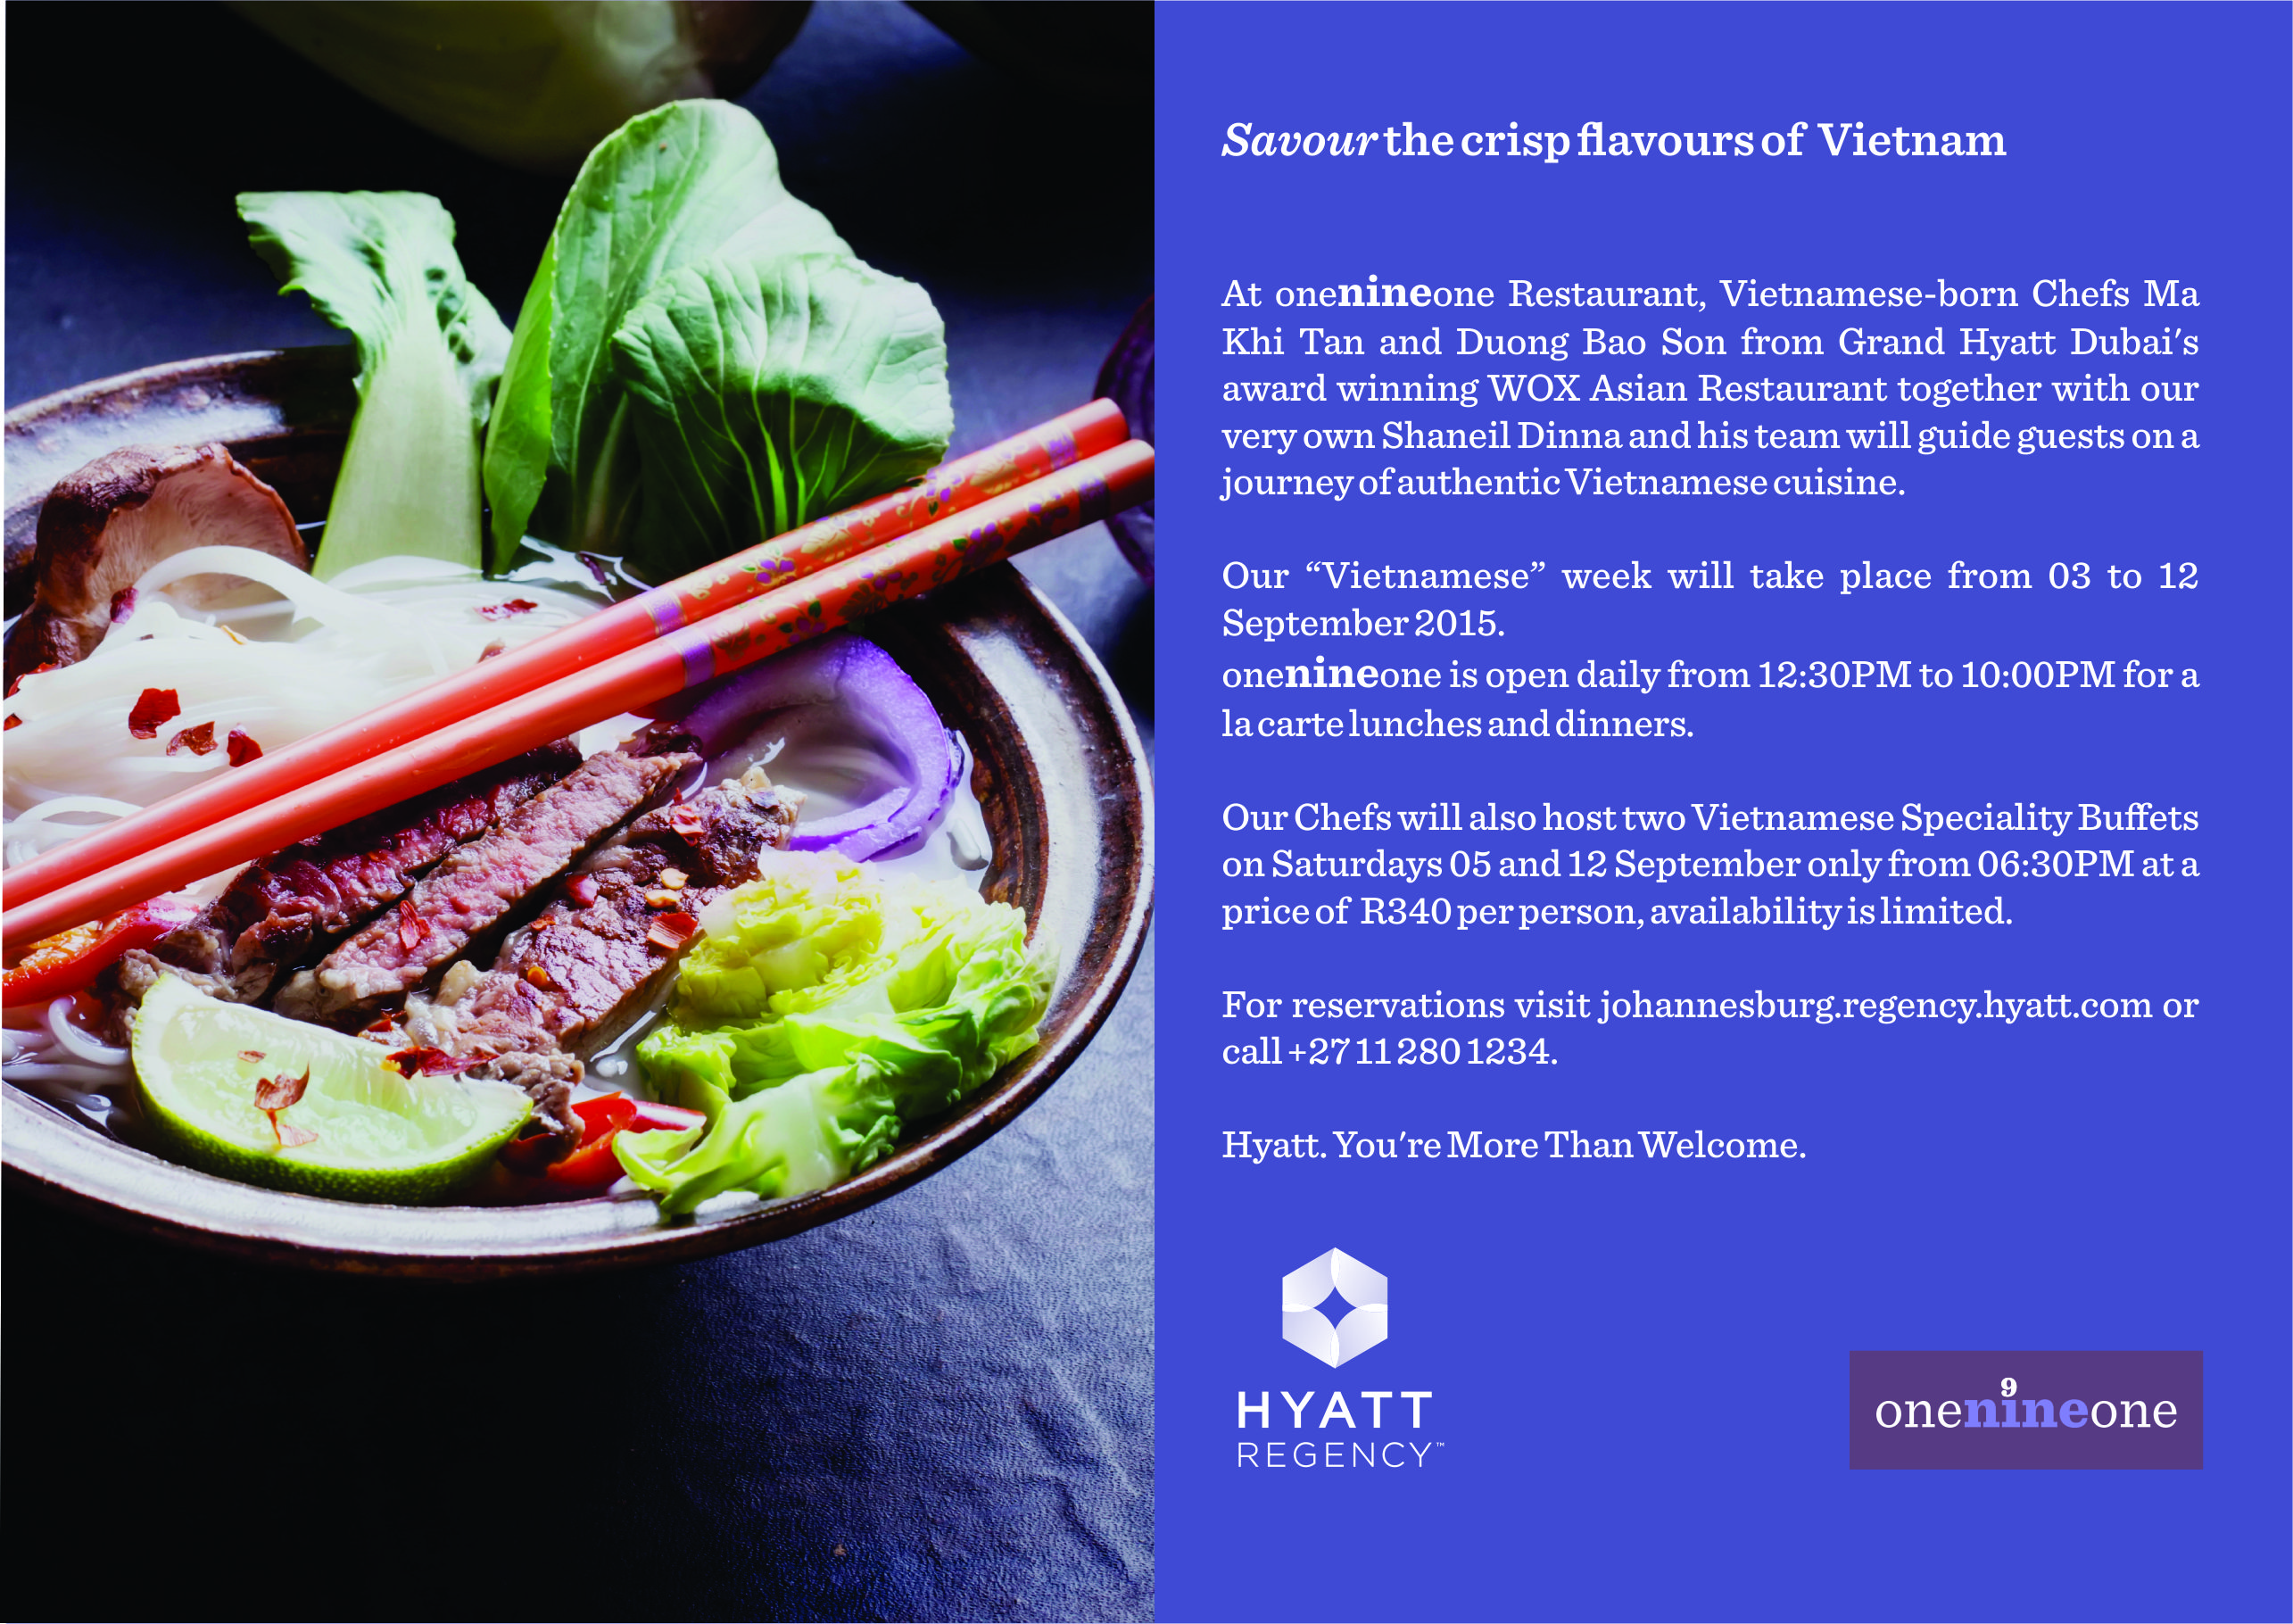 Vietnamese Food Promotion at Hyatt Regency Johannesburg, image supplied by the Hyatt